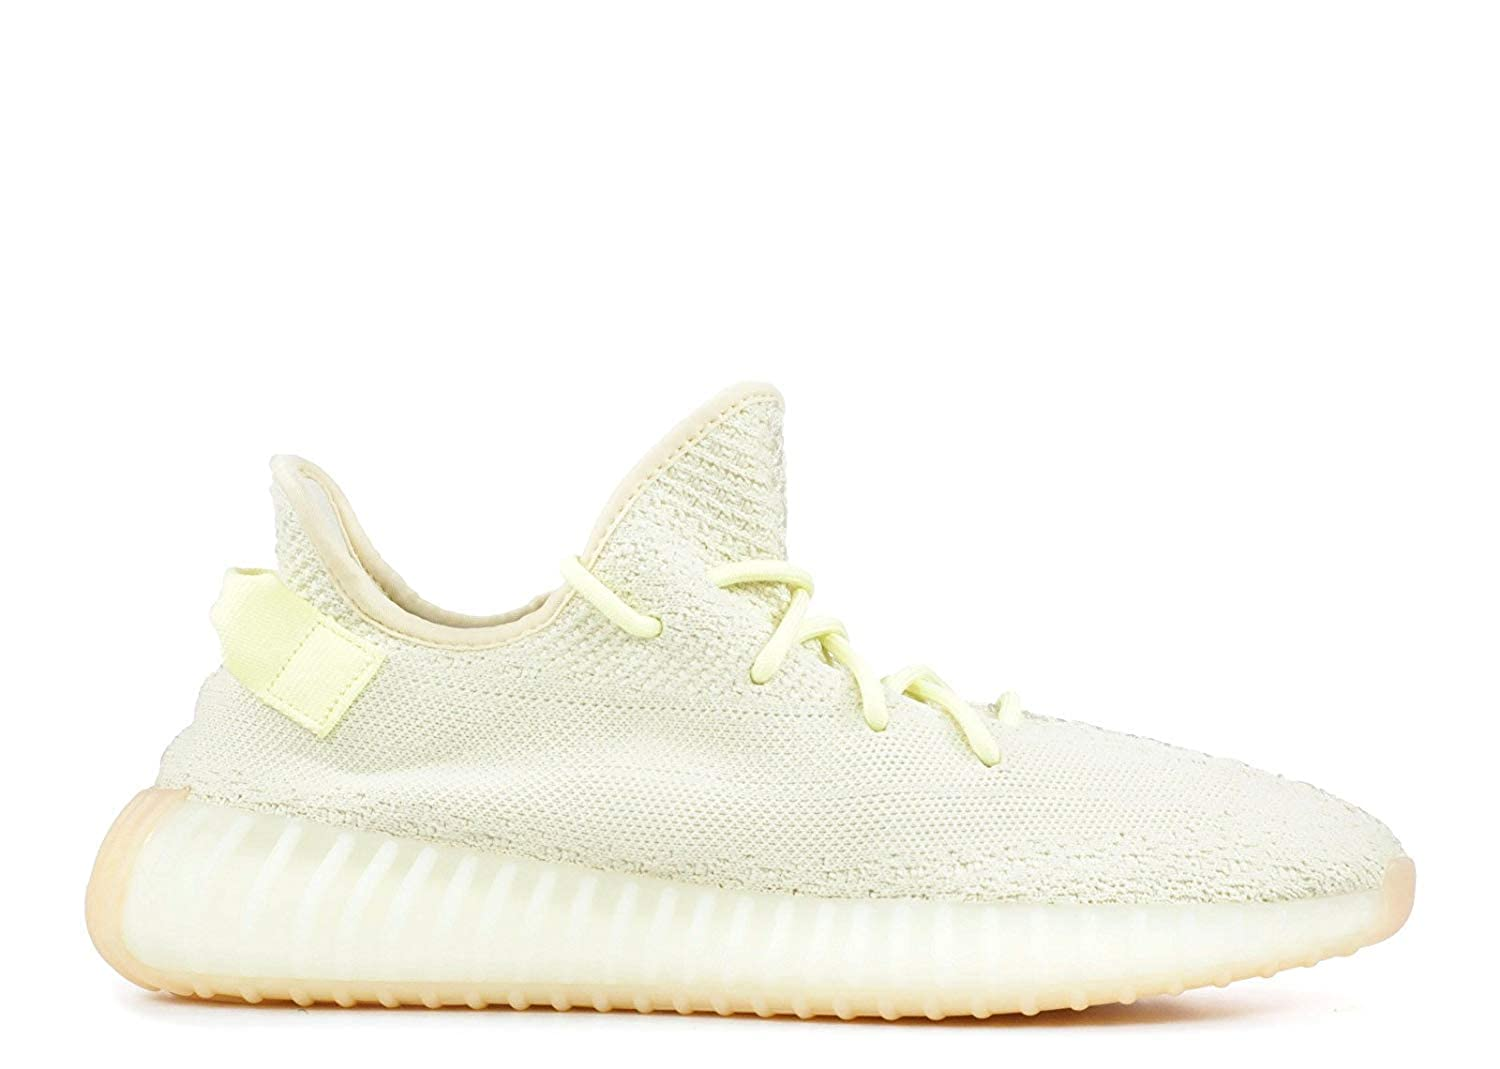 pretty nice 4448c 704ff Amazon.com: Yeezy Boost 350 V2 F36980 Butter: Shoes